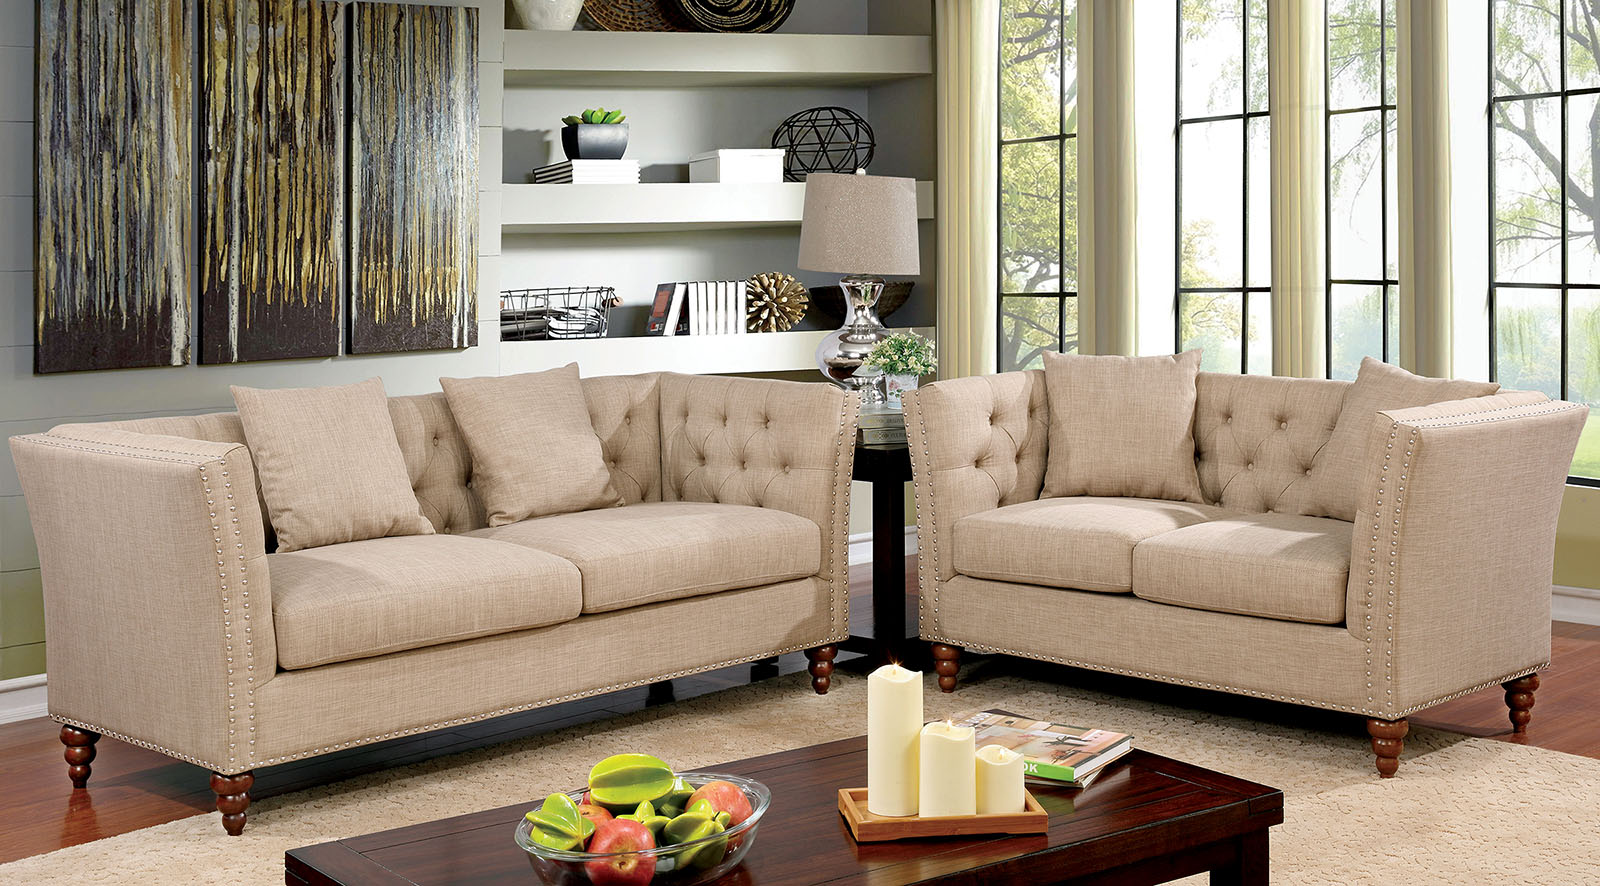 IMANI 2PC SOFA & LOVE SEAT